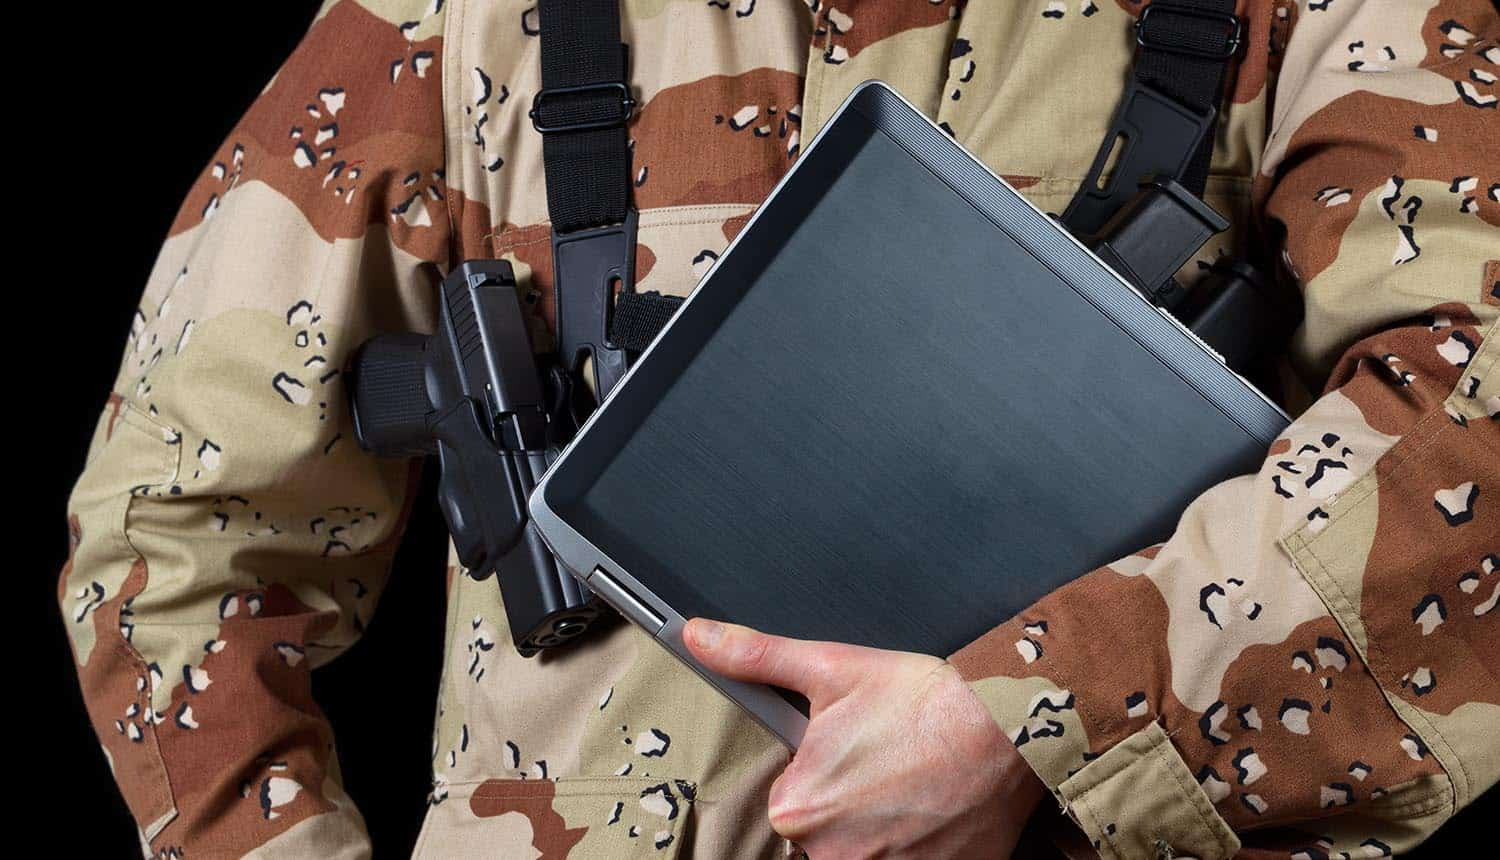 Armed male soldier holding laptop computer showing threat of cyber war